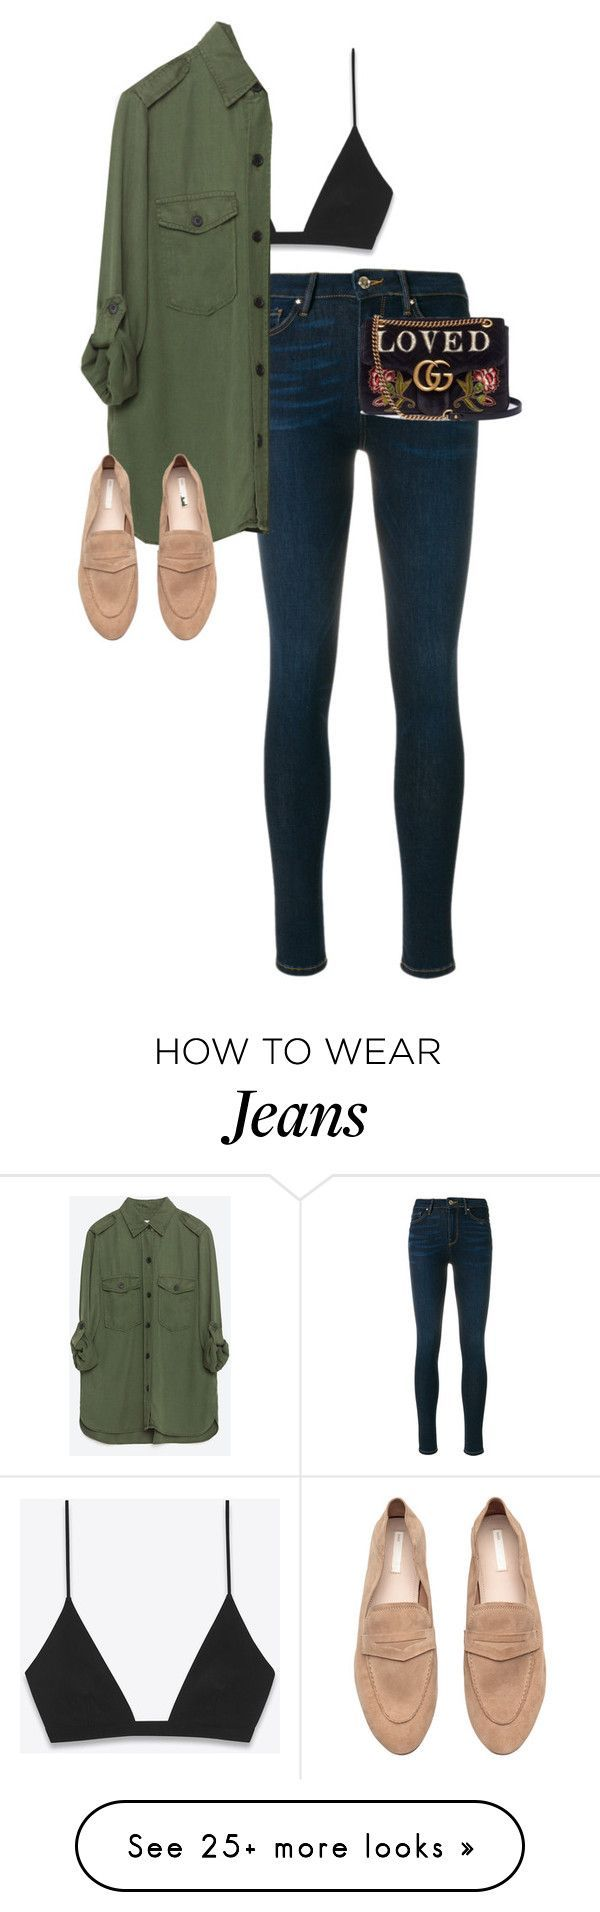 """Untitled #13702"" by alexsrogers on Polyvore featuring Yves Saint Laurent, Tommy Hilfiger, Zara and Gucci #winteroutfits"